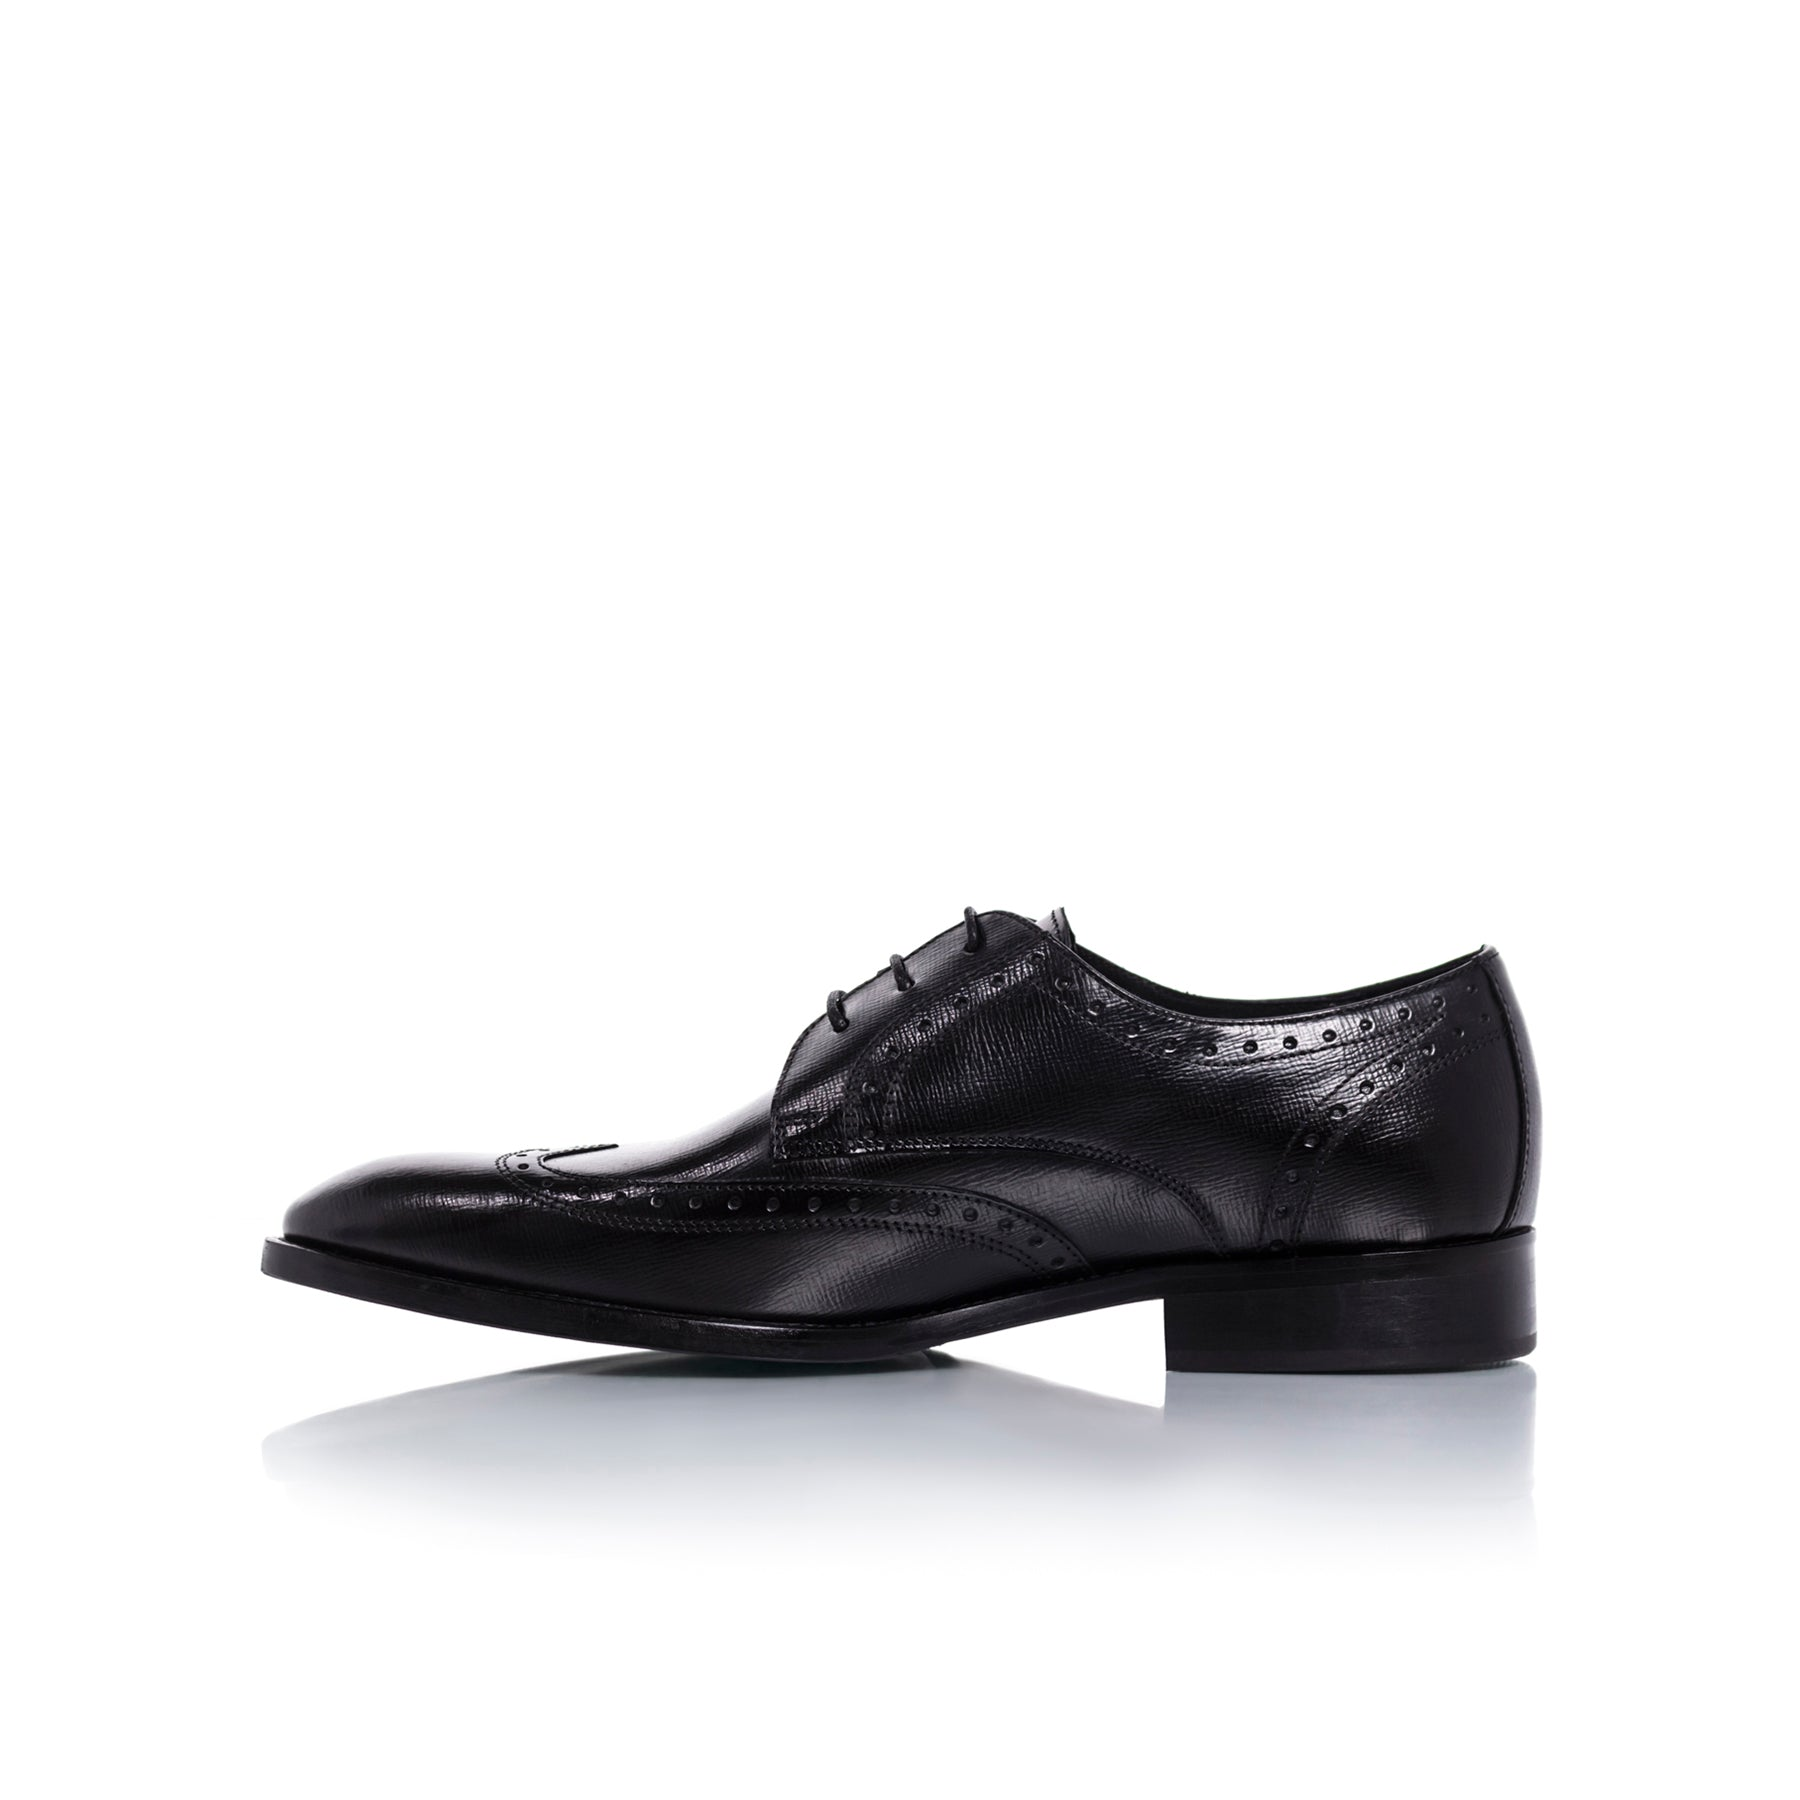 Nicholas Black Leather Shoes